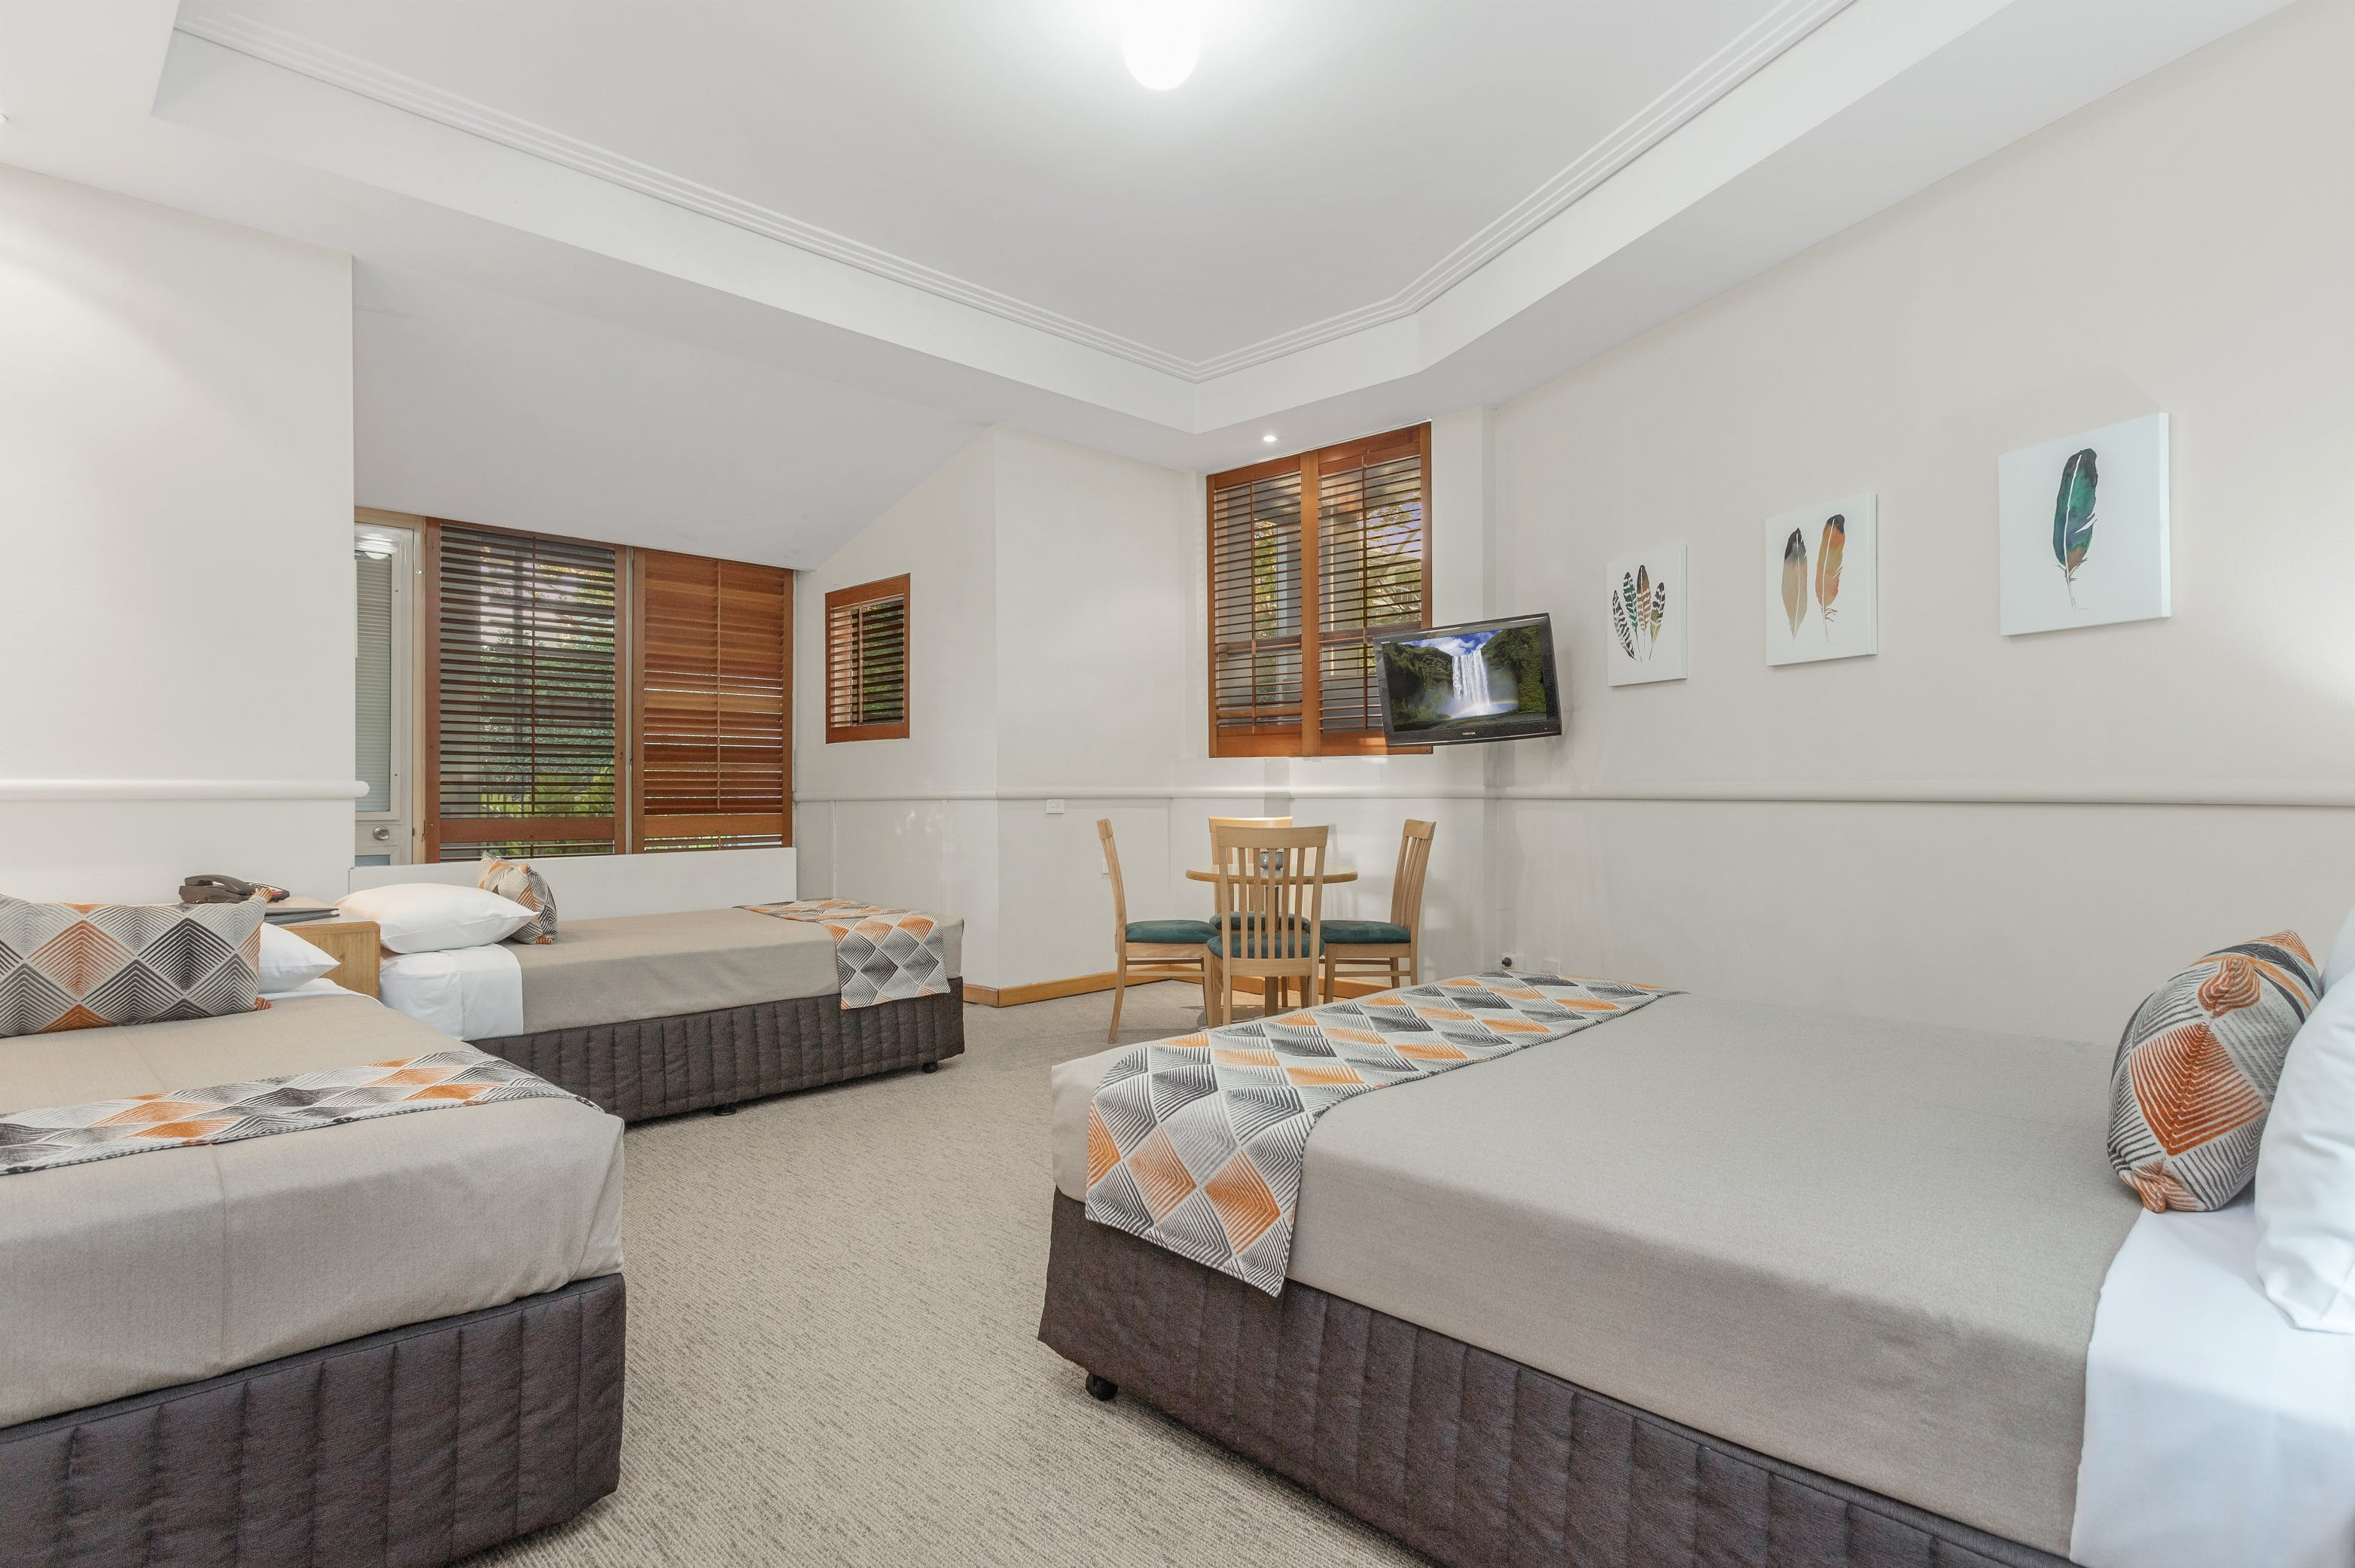 Cheap overnight accommodation for 4 guests located near Portside Wharf and Brisbane Airports